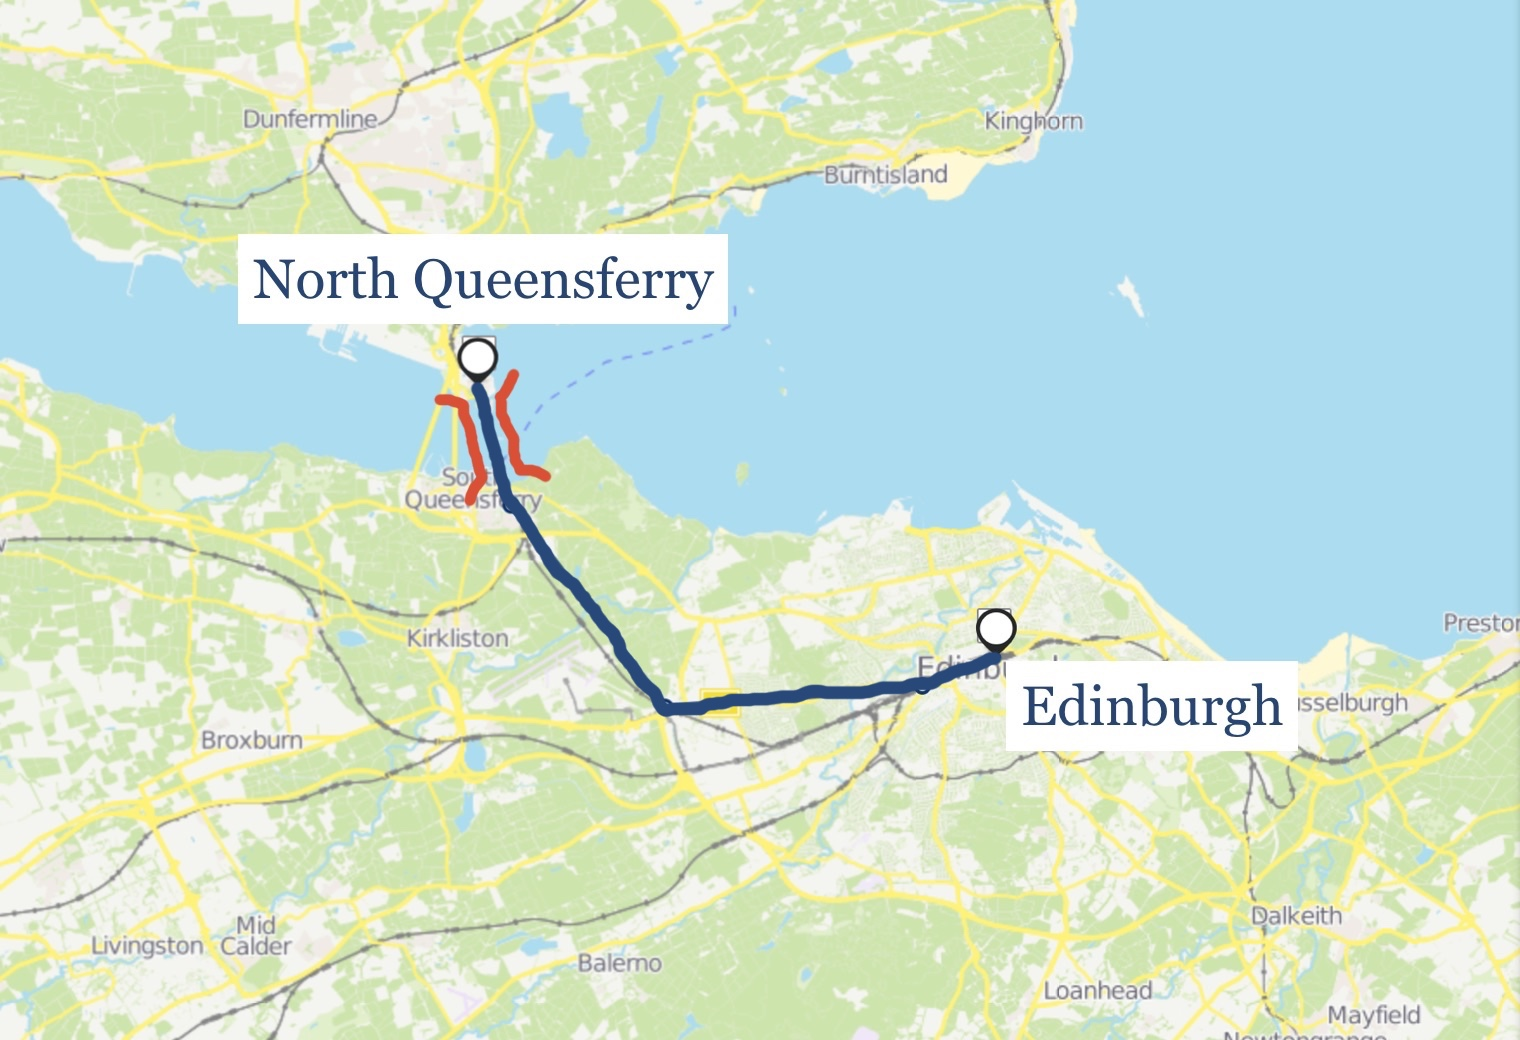 A map showing the railway line between Edinburgh and North Queensferry.